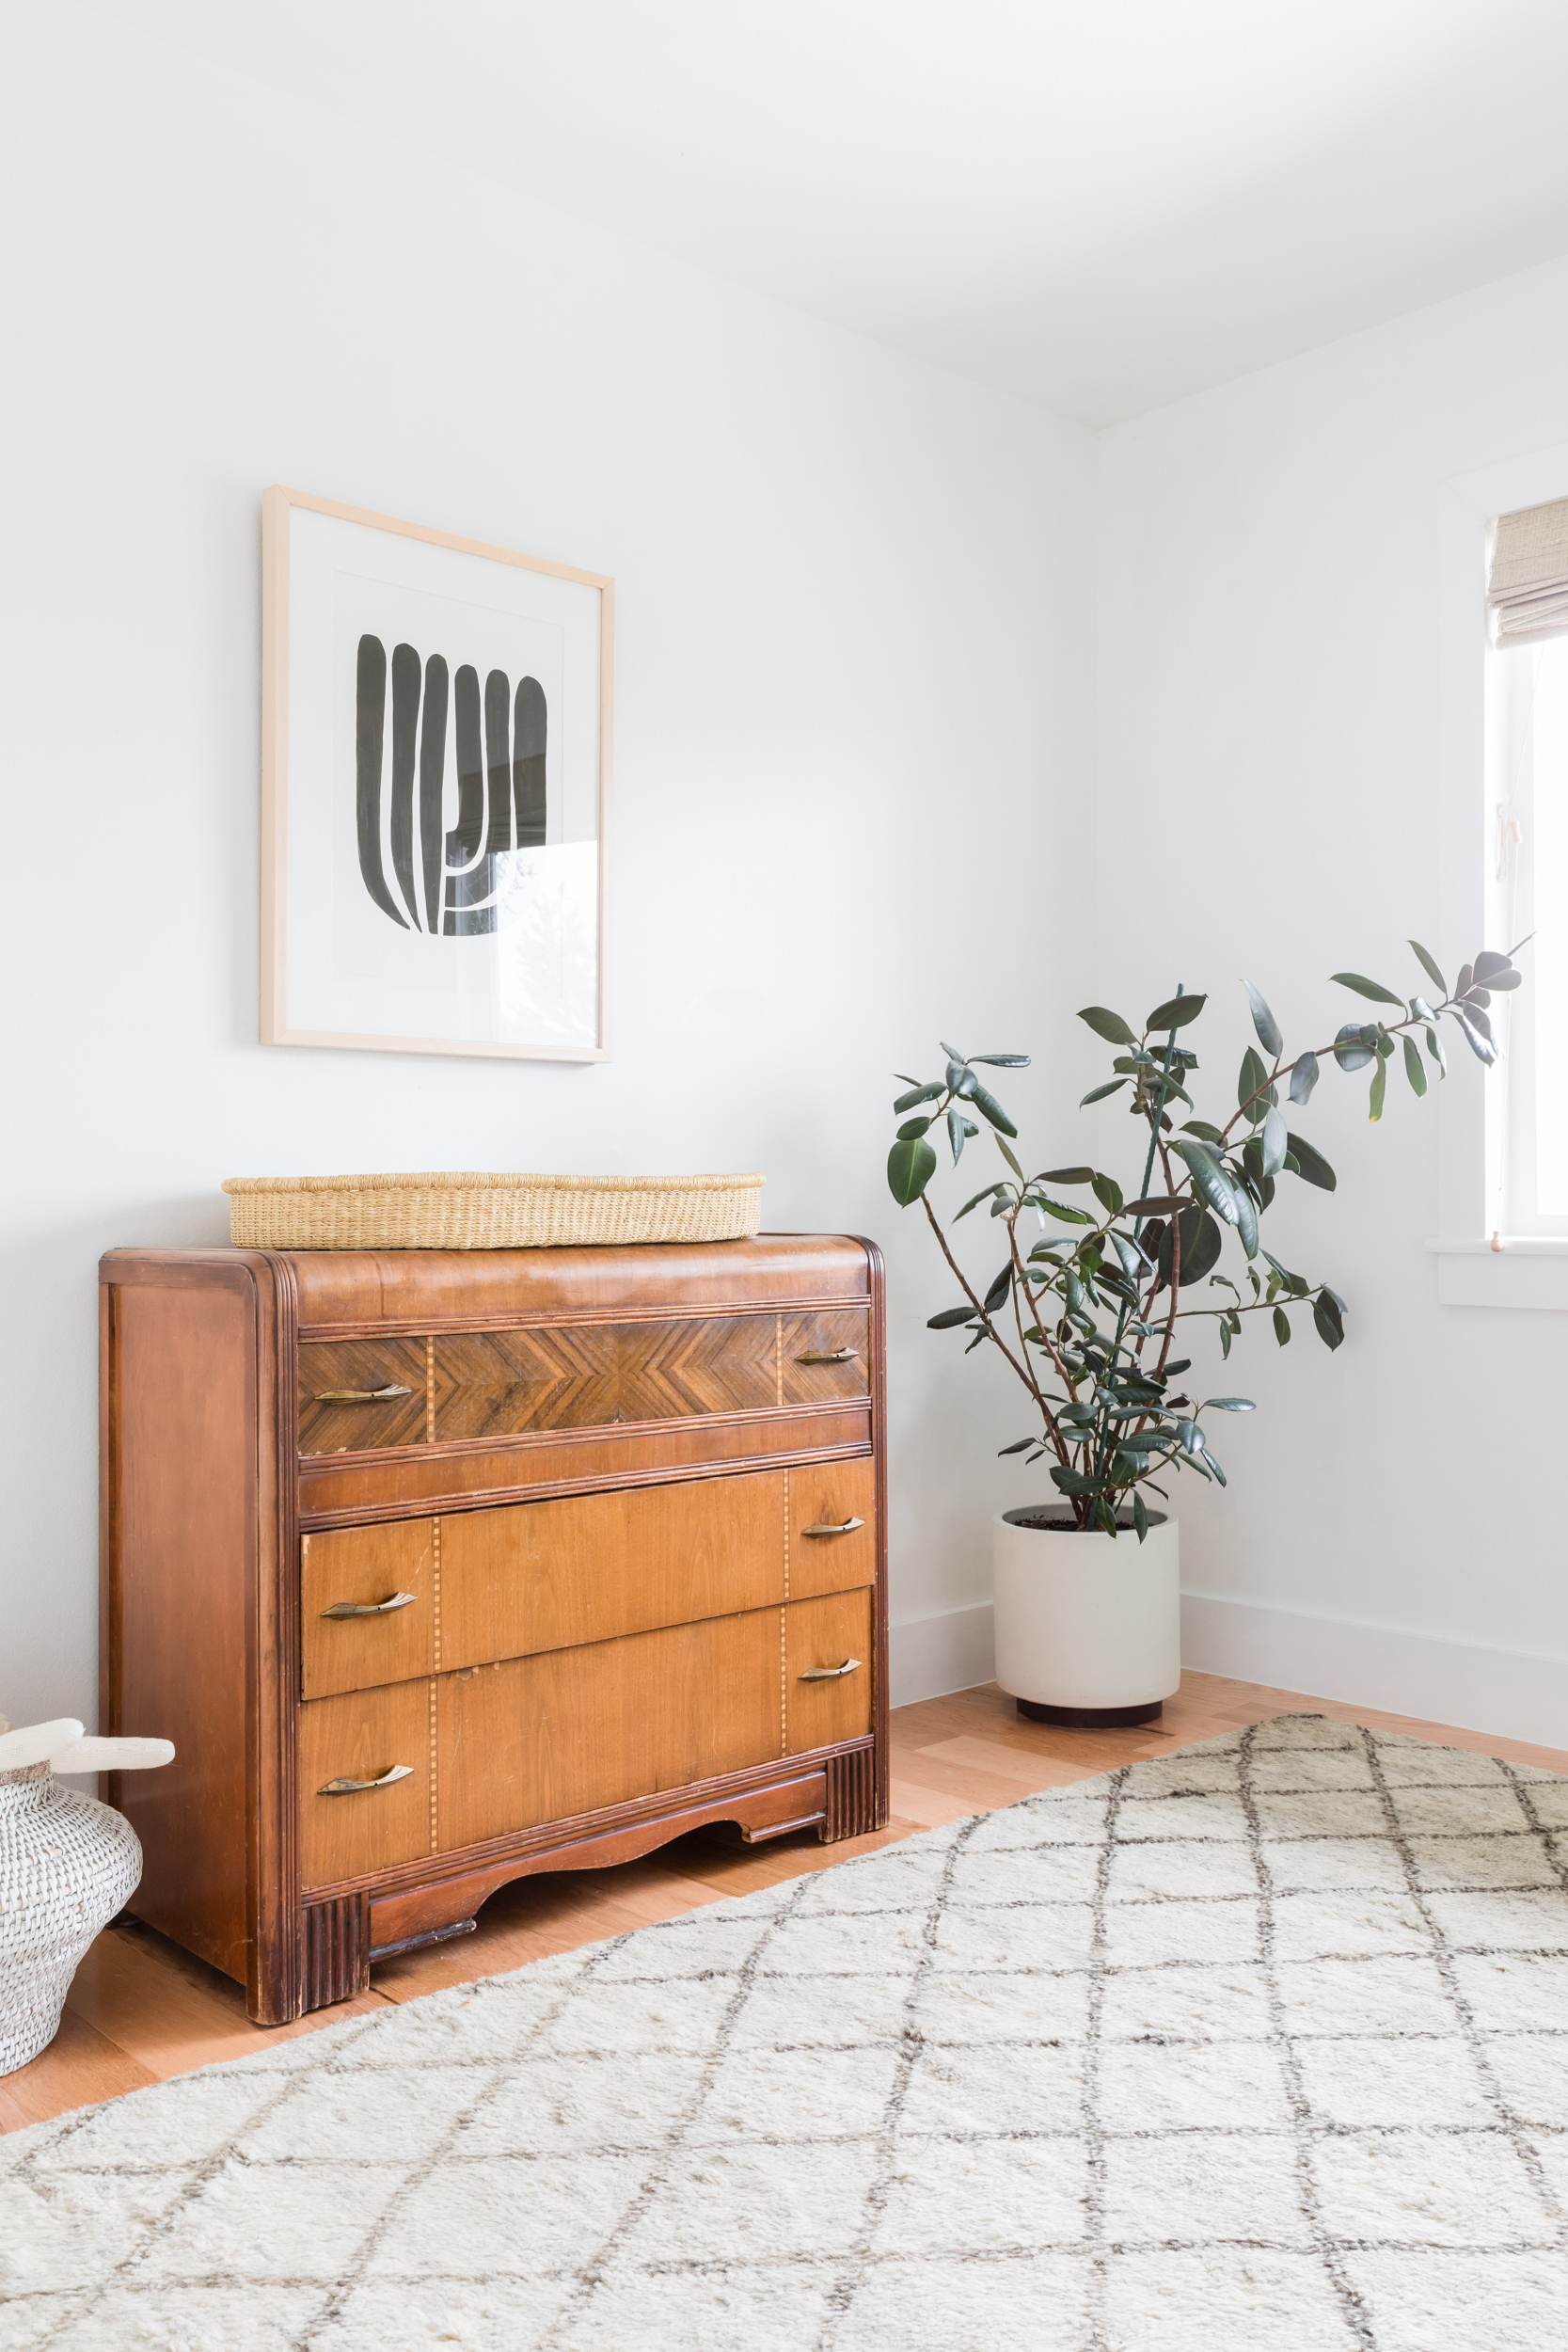 Mid mod and minimalist nursery with white walls, potted rubber tree, and antique wooden dresser as changing table.